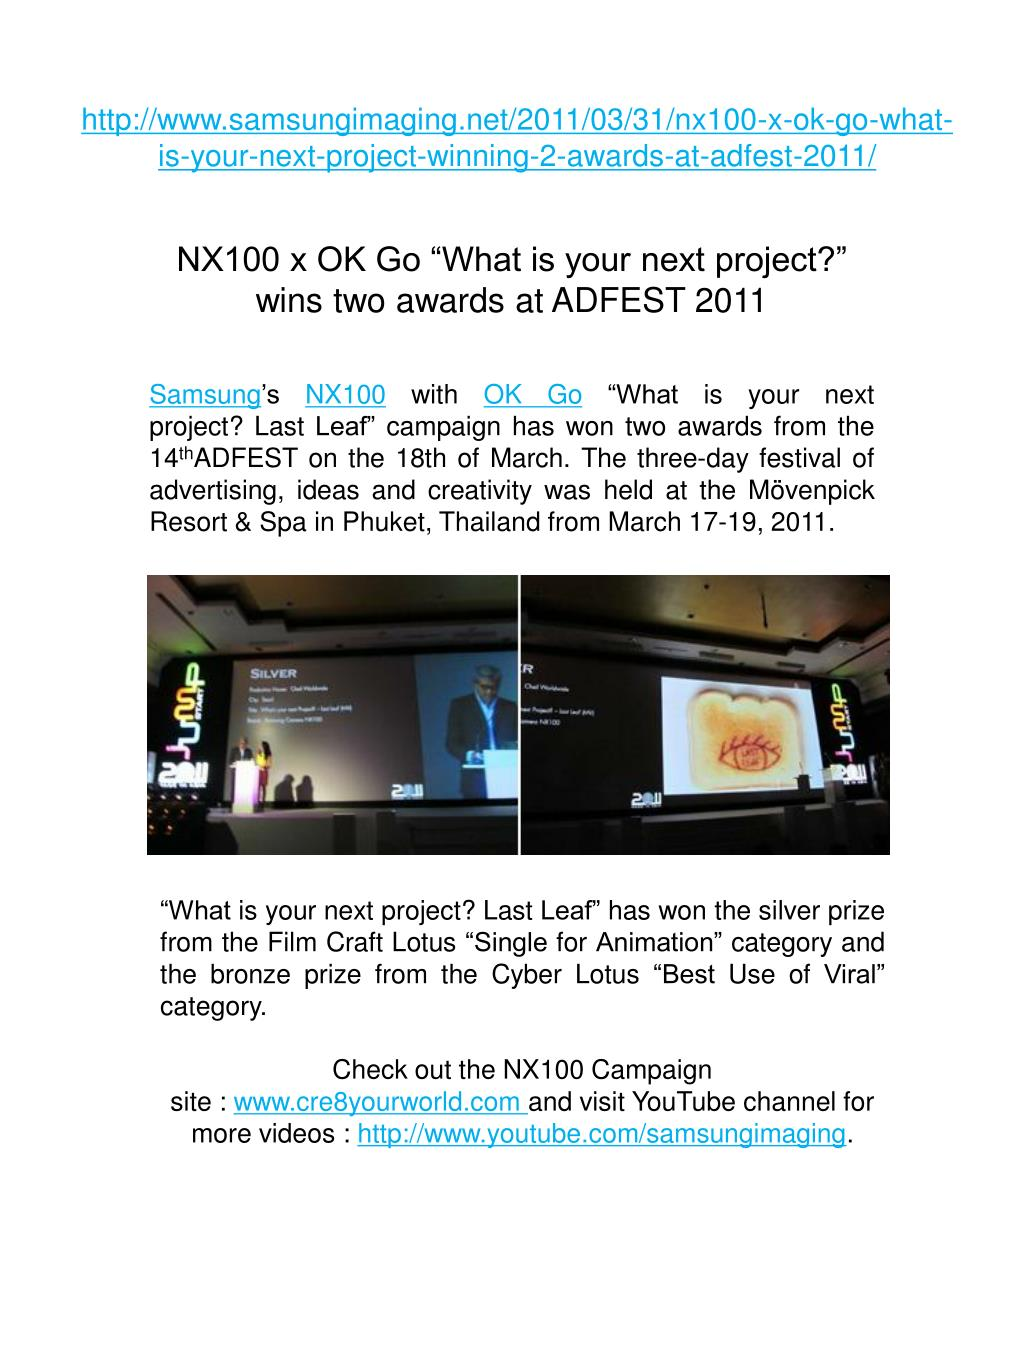 http://www.samsungimaging.net/2011/03/31/nx100-x-ok-go-what-is-your-next-project-winning-2-awards-at-adfest-2011/